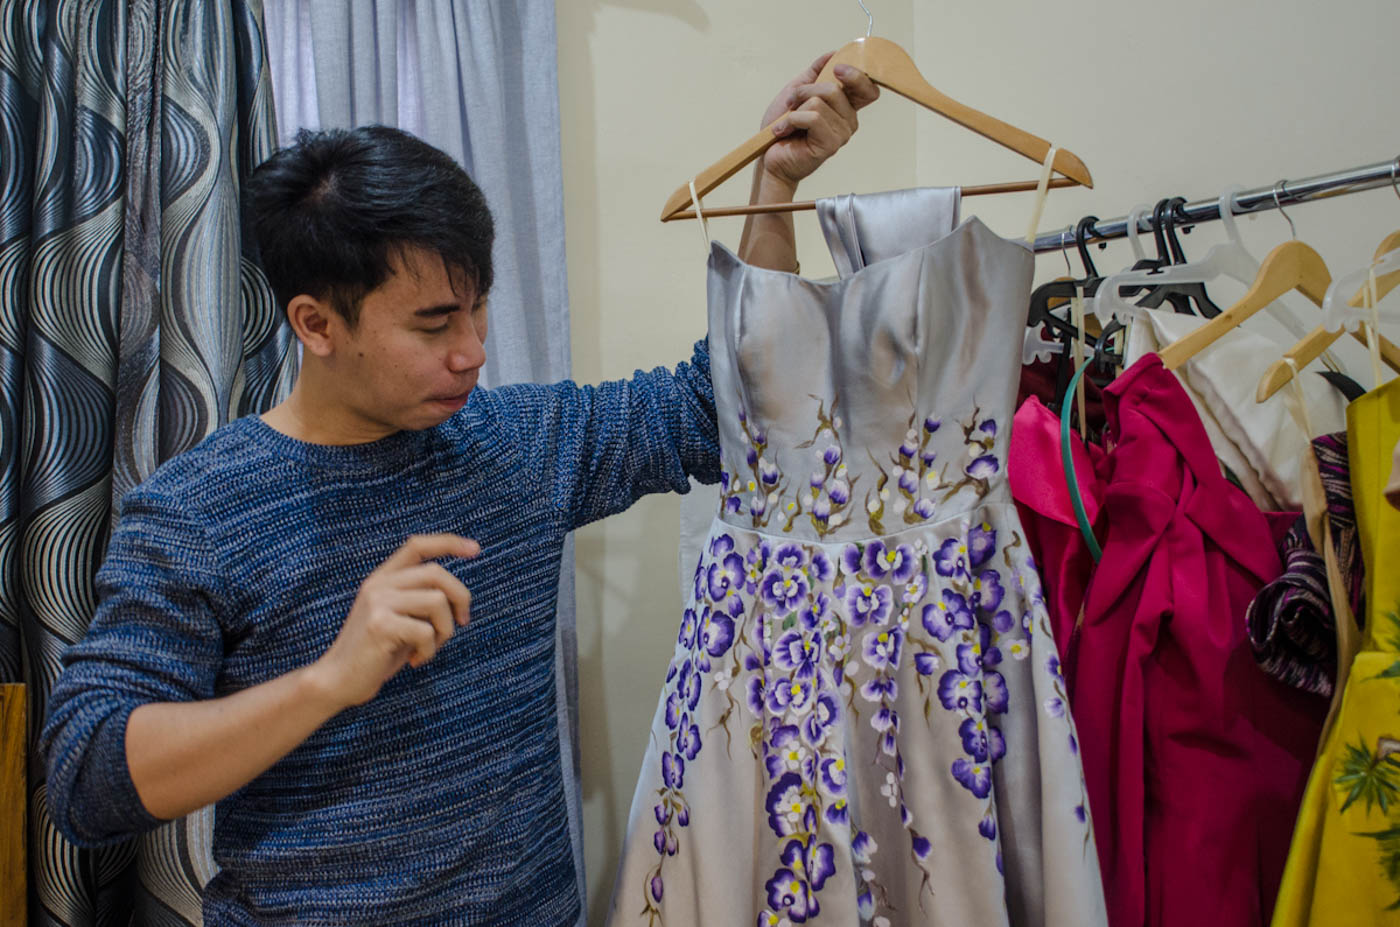 HANDPAINTED. Jearson shows the dress Catriona wore during her meeting with Princess Sirivannavari Nariratana. The princess was the designer of the Miss Universe swimsuits.